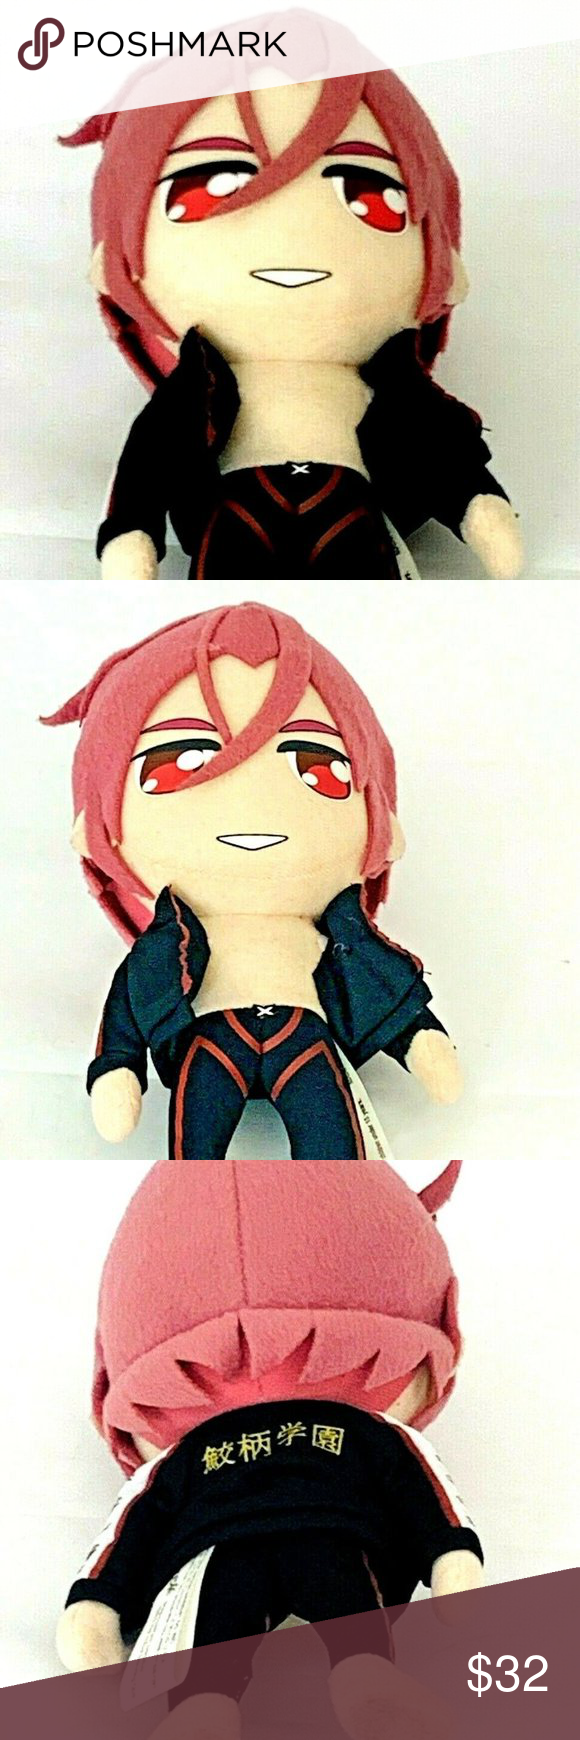 Free Rin Matsuoka Plush 10 Inches 2014 Anime Manga In 2020 2014 Anime Anime Kyoto Animation Check out our rin matsuoka selection for the very best in unique or custom, handmade pieces did you scroll all this way to get facts about rin matsuoka? pinterest